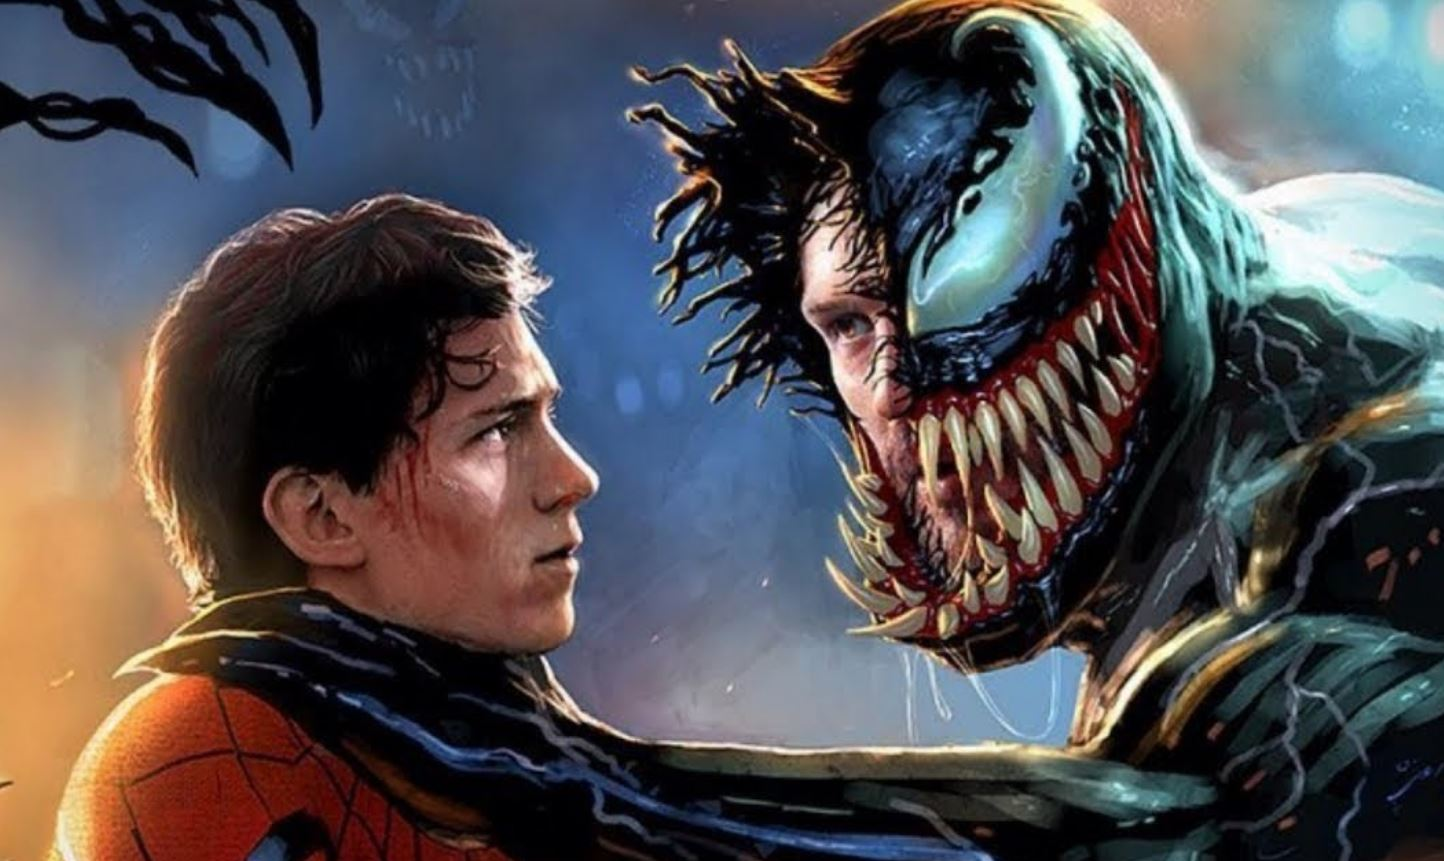 Venom 2: Tom Holland Starrer Release Date? Cast? And Other Details